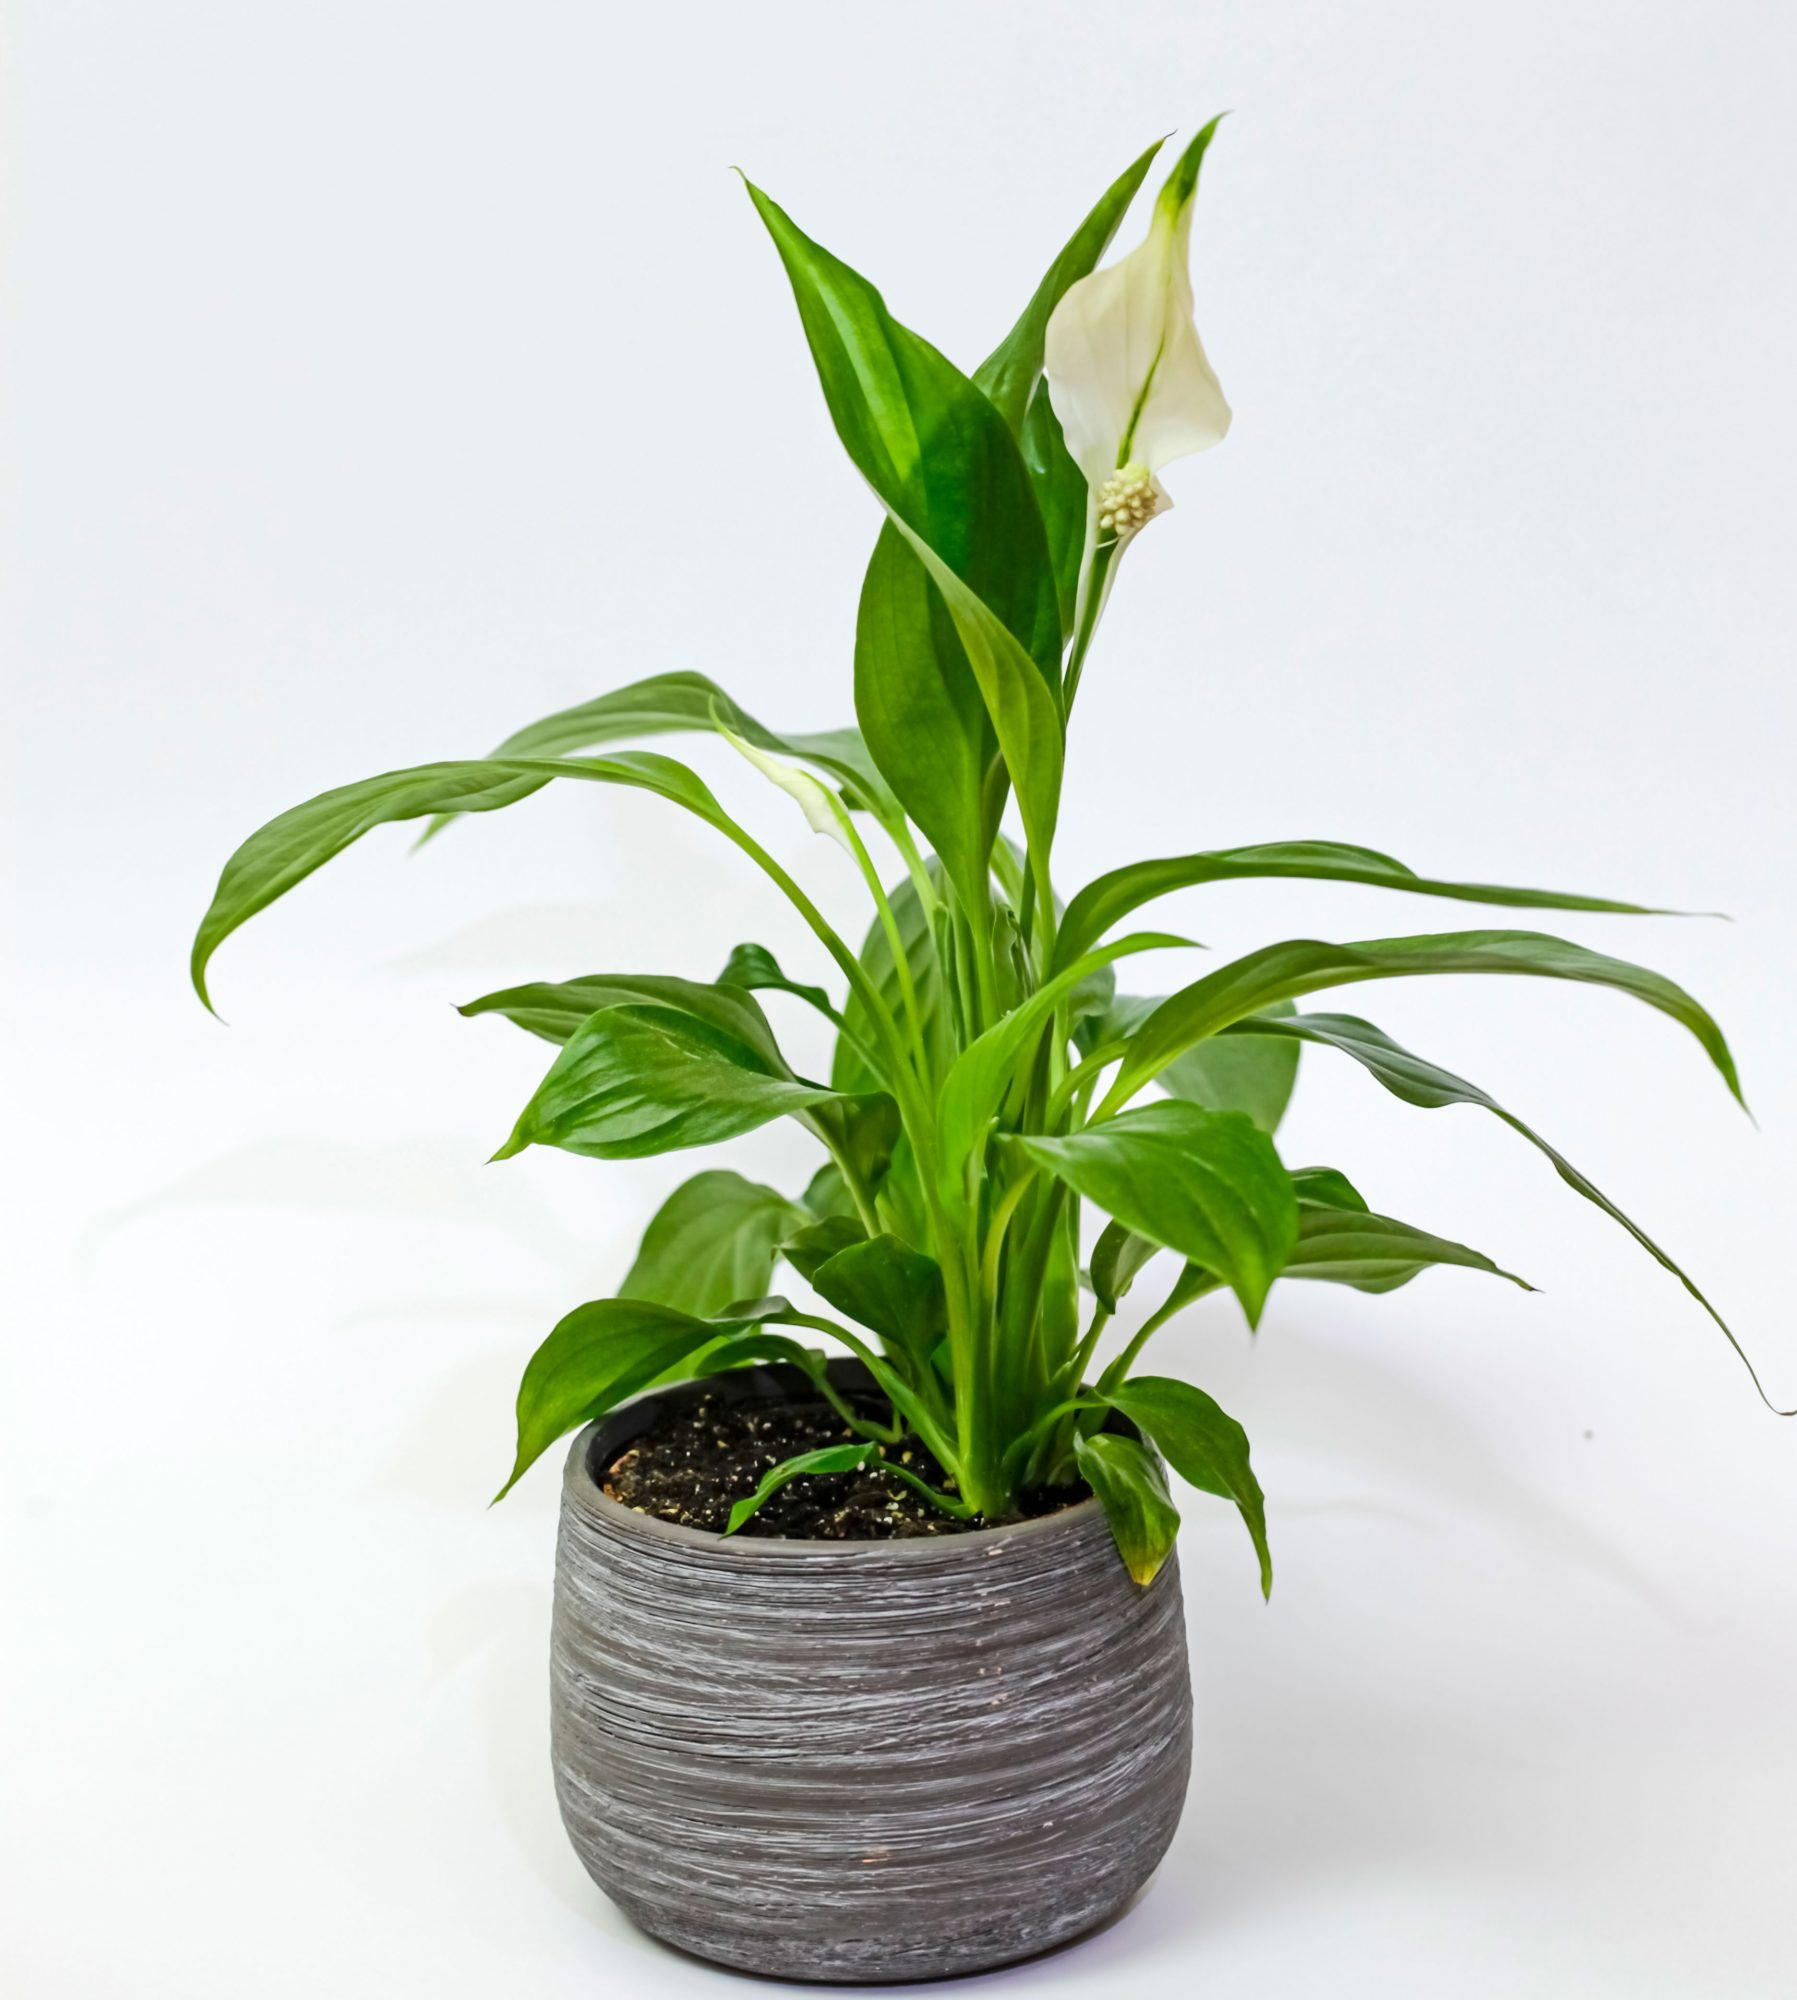 Spathiphyllum, commonly known as spath or peace lilies